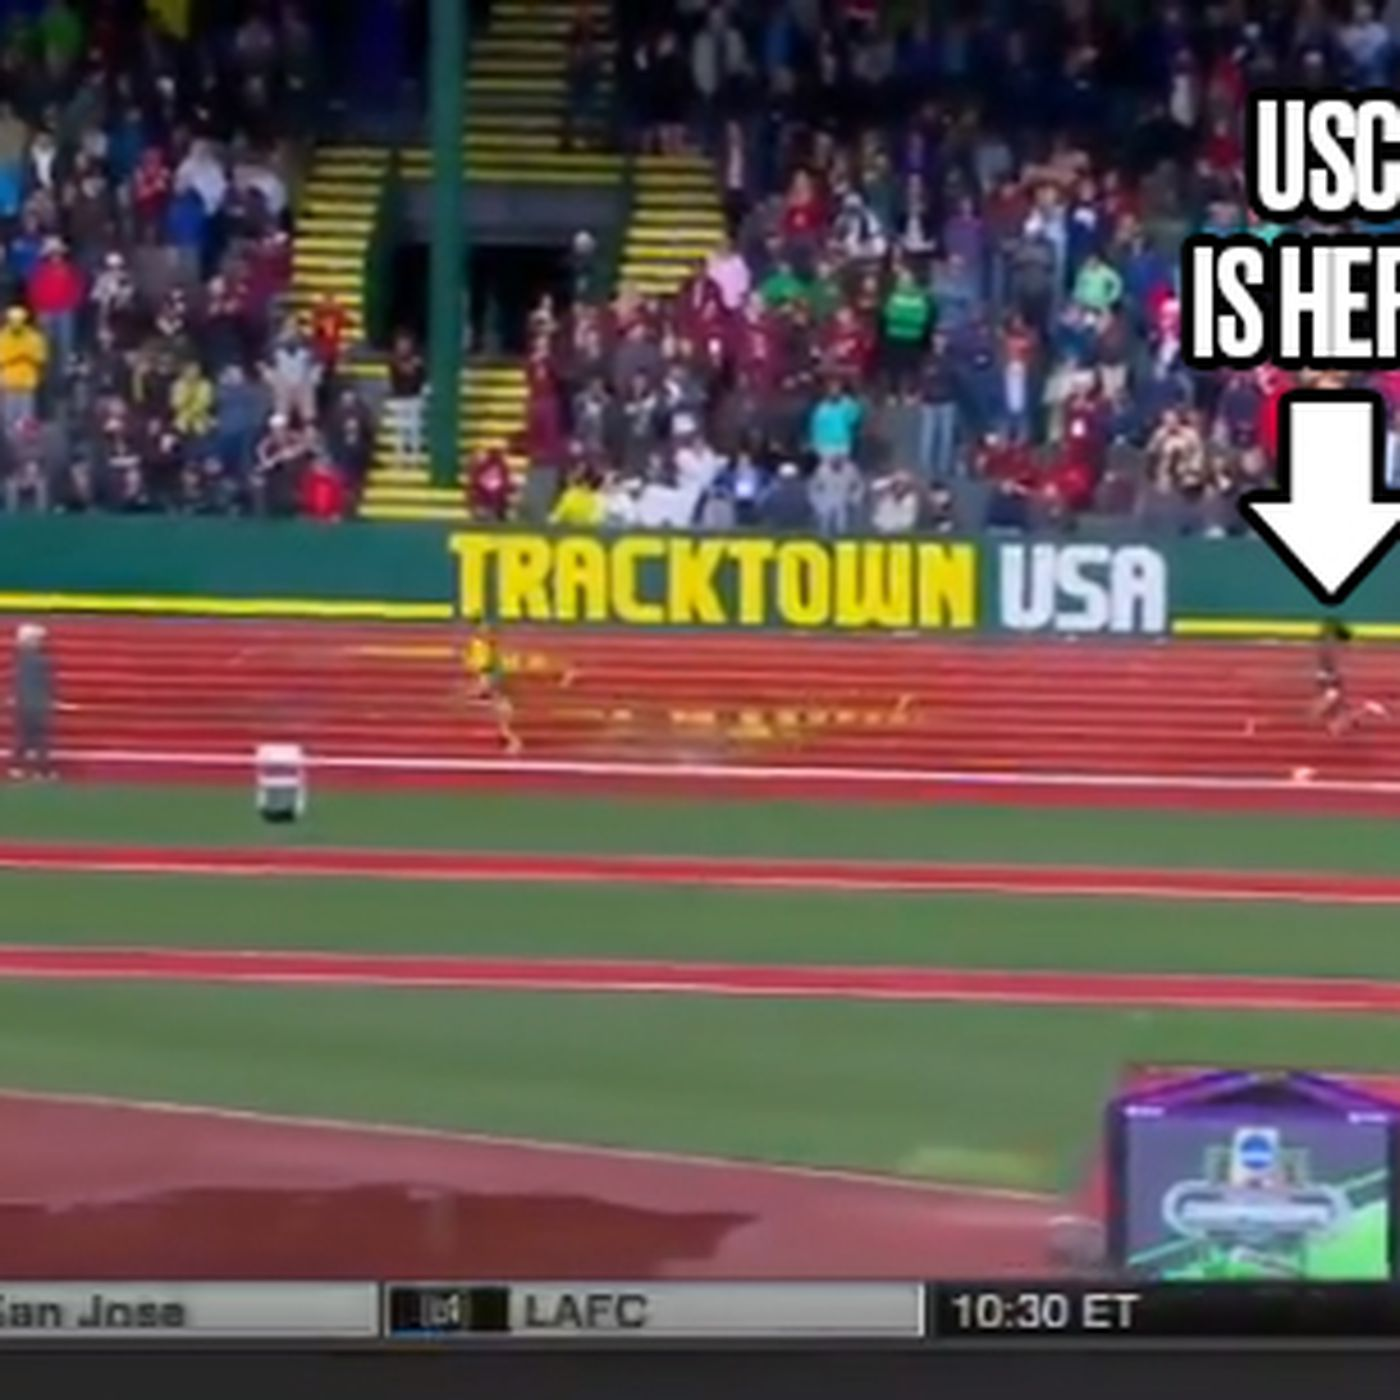 USC's 4x400 relay comeback is one of the best you'll ever see